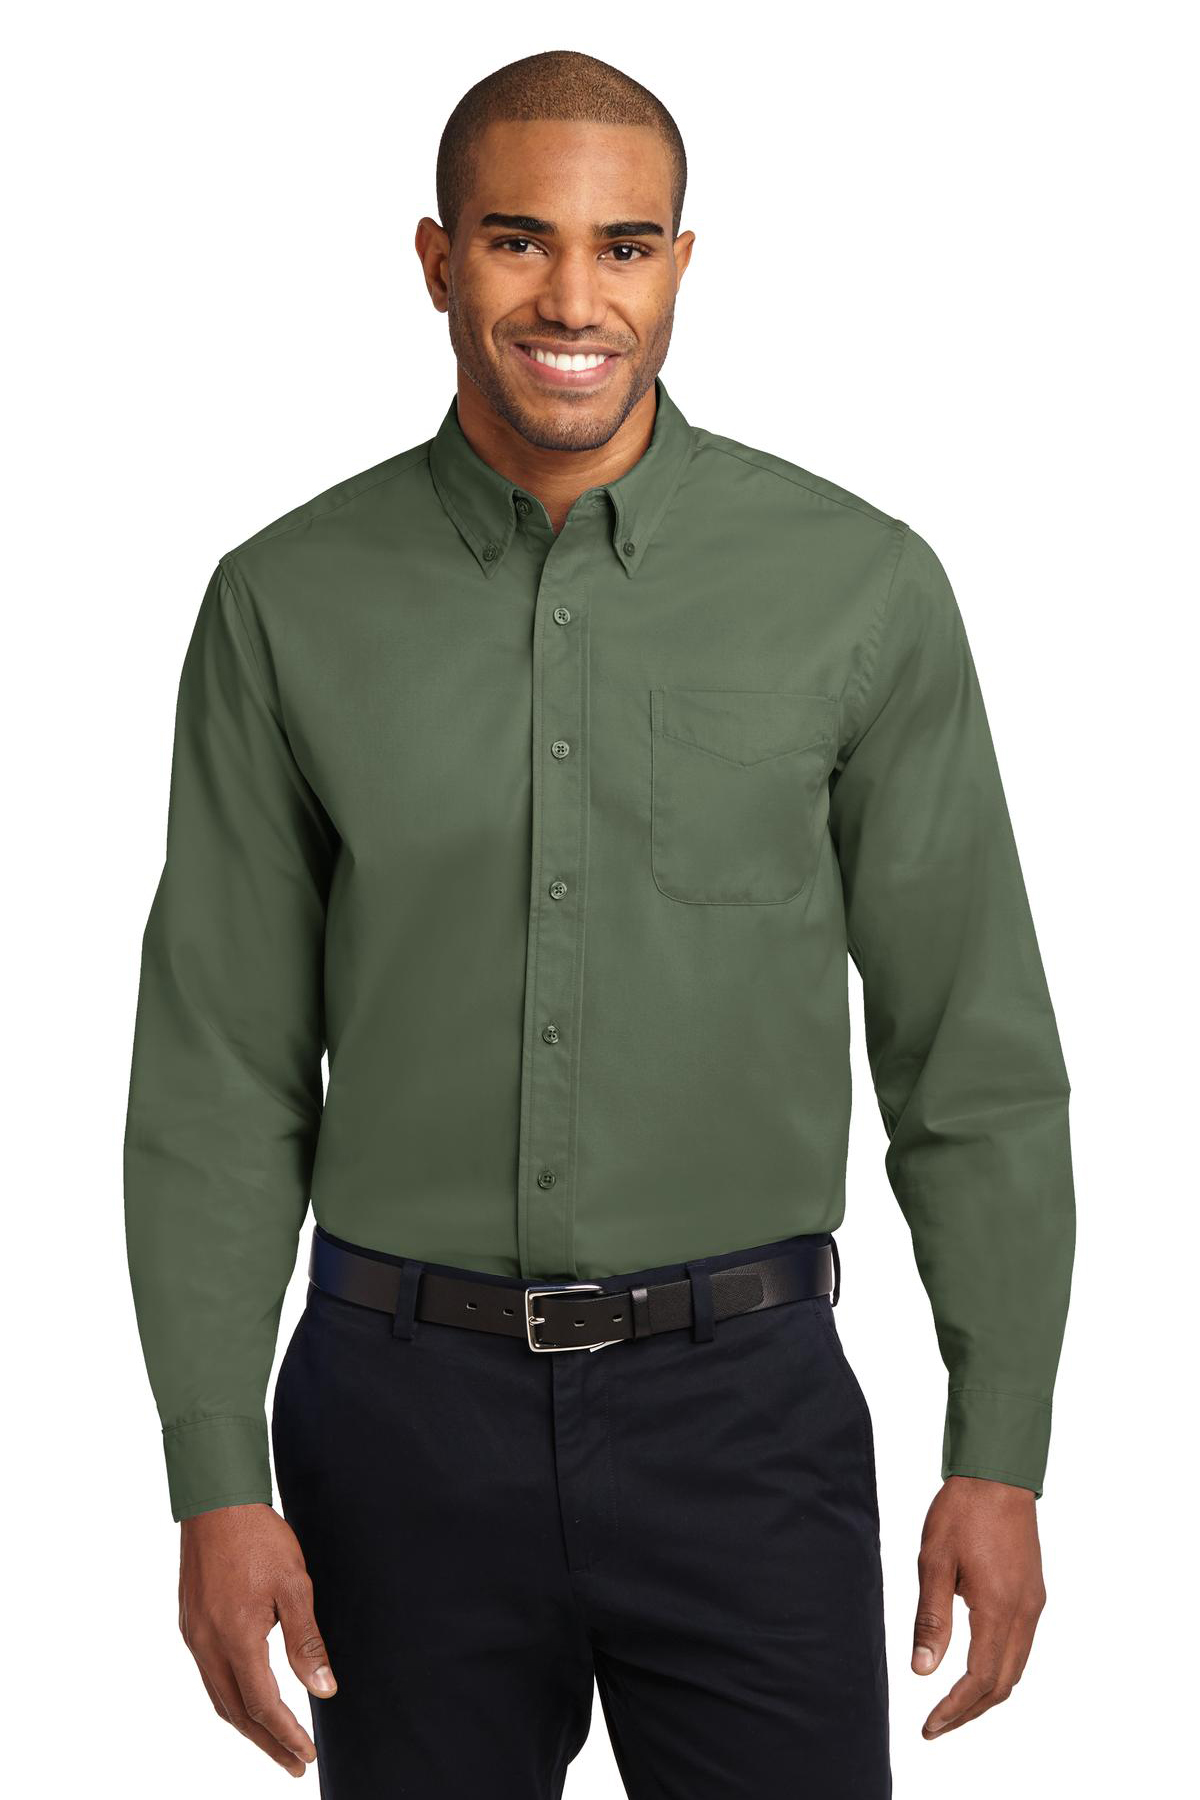 Woven-Shirts-Easy-Care-43